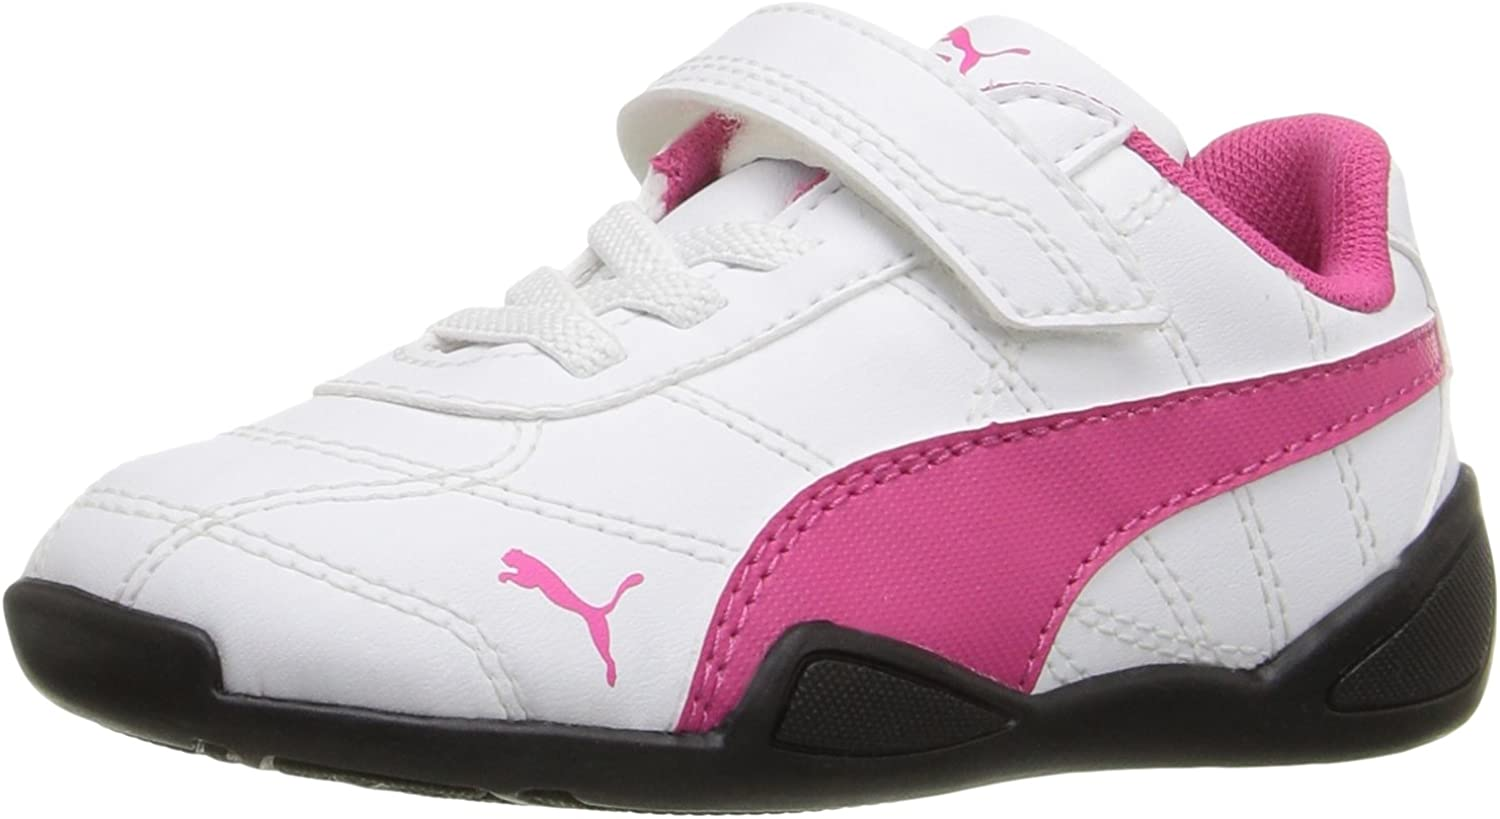 PUMA Tune Cat Louisville-Jefferson County Mall 3 Sneaker Inf Outlet SALE V